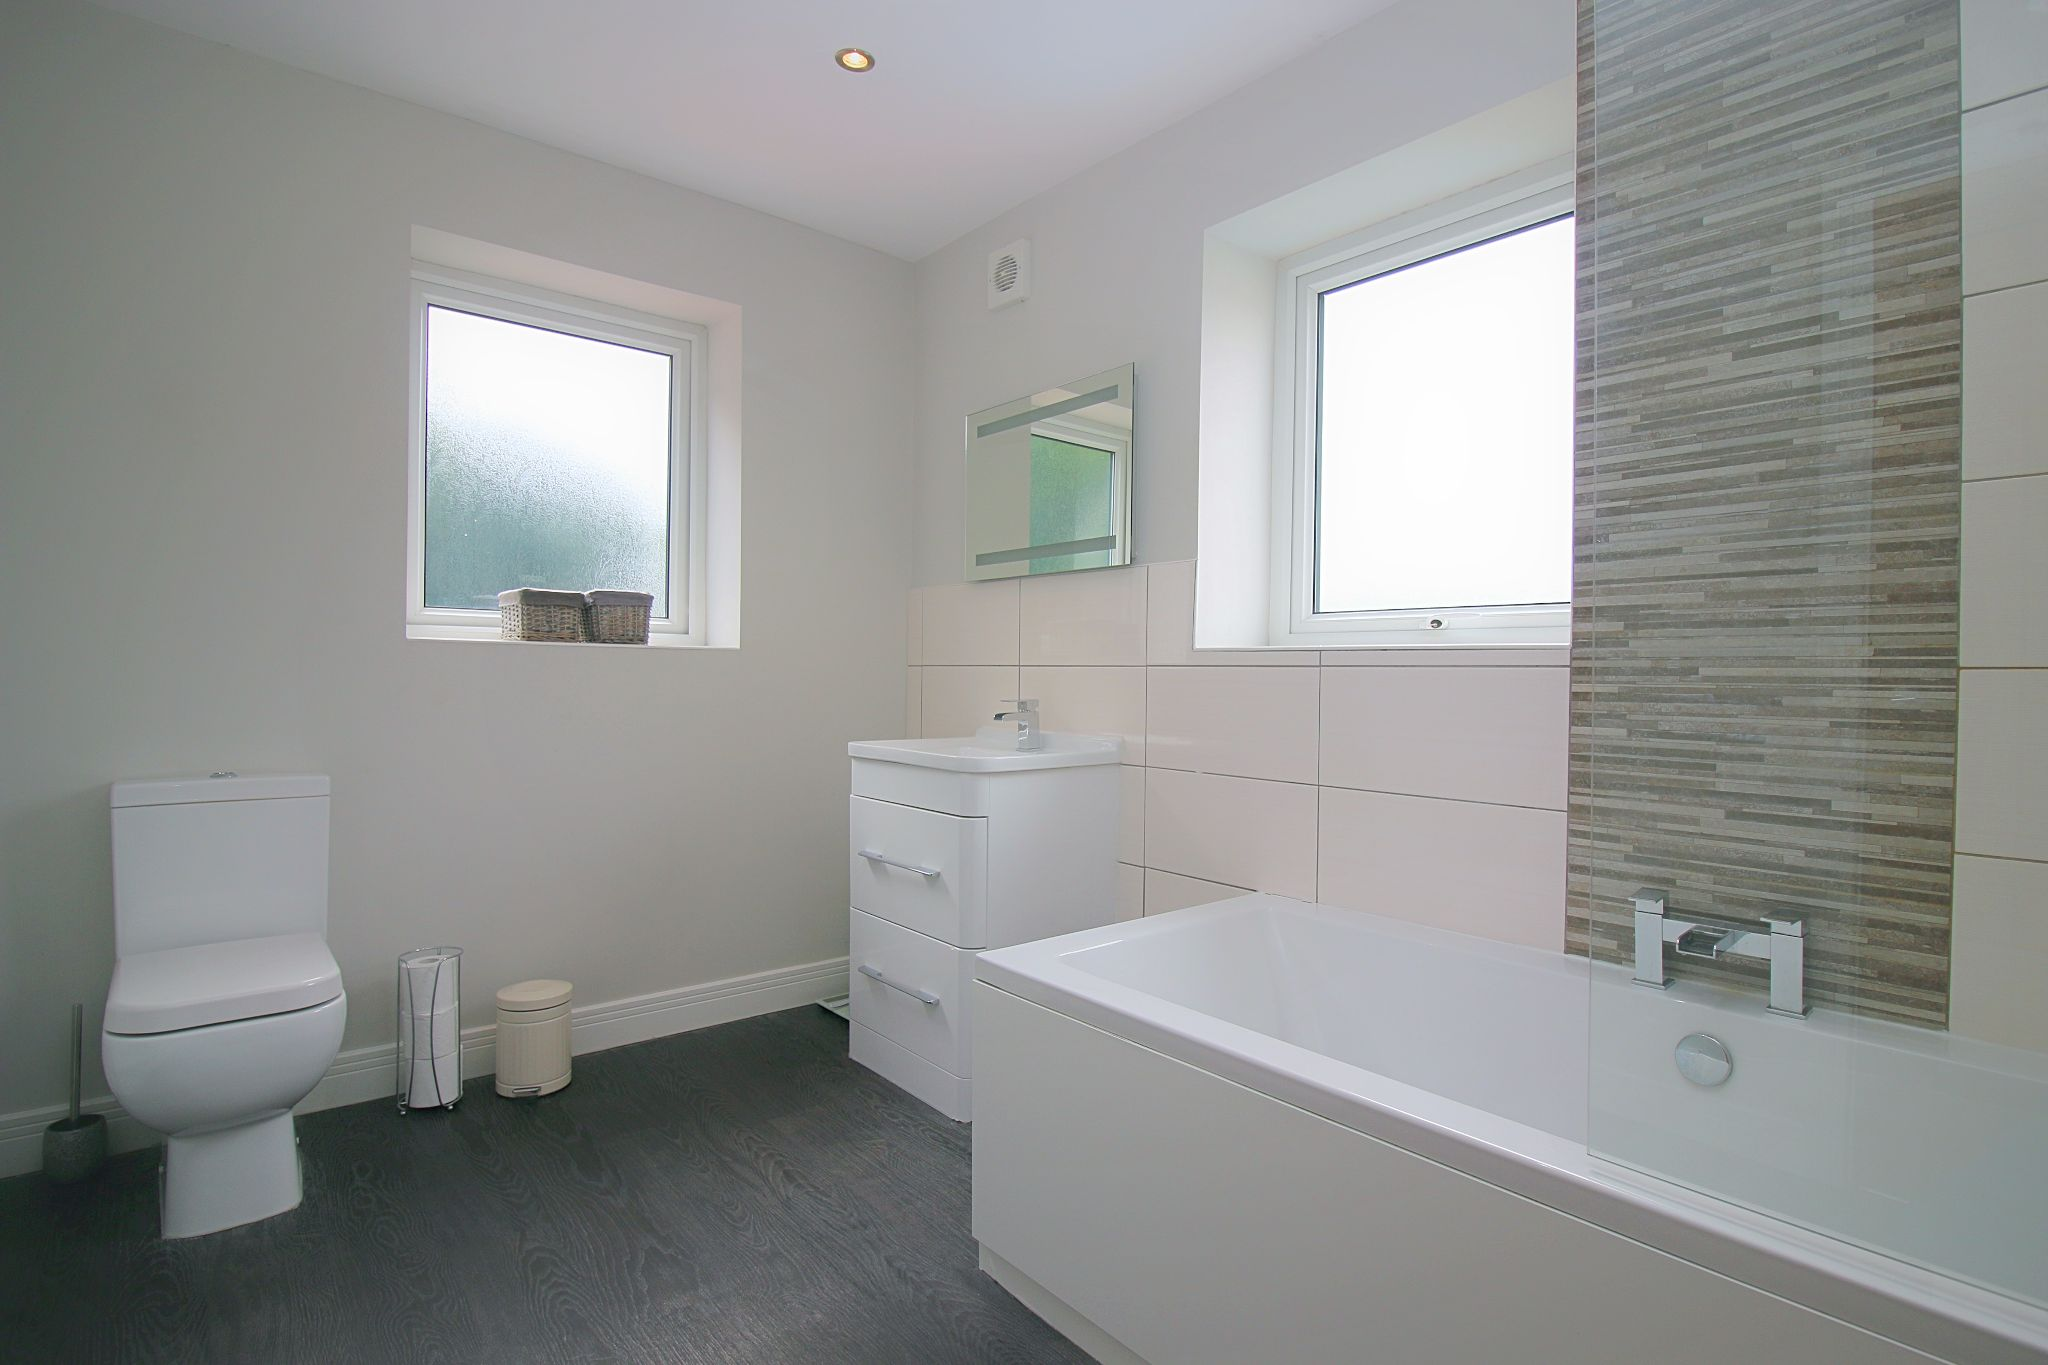 6 Bedroom Detached House For Sale - Photograph 28